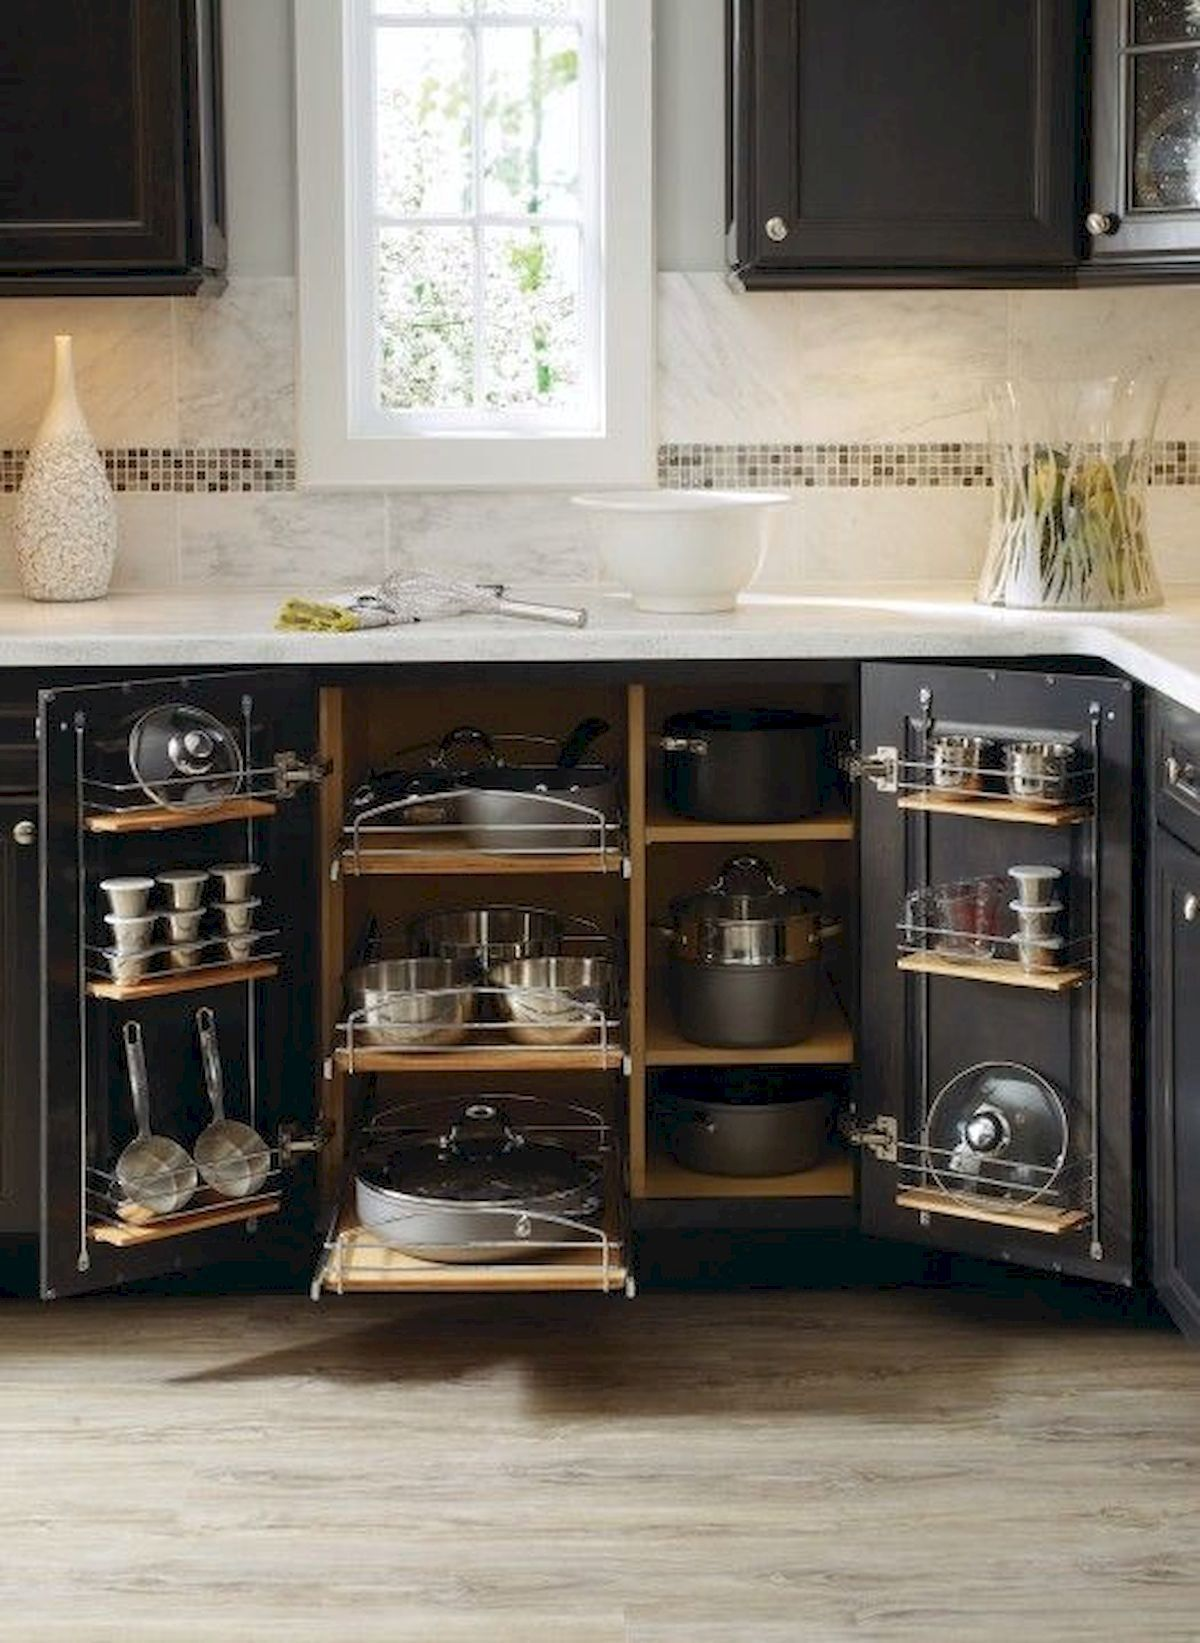 7 Kitchen Bloggers to Follow for Kitchen Inspiration